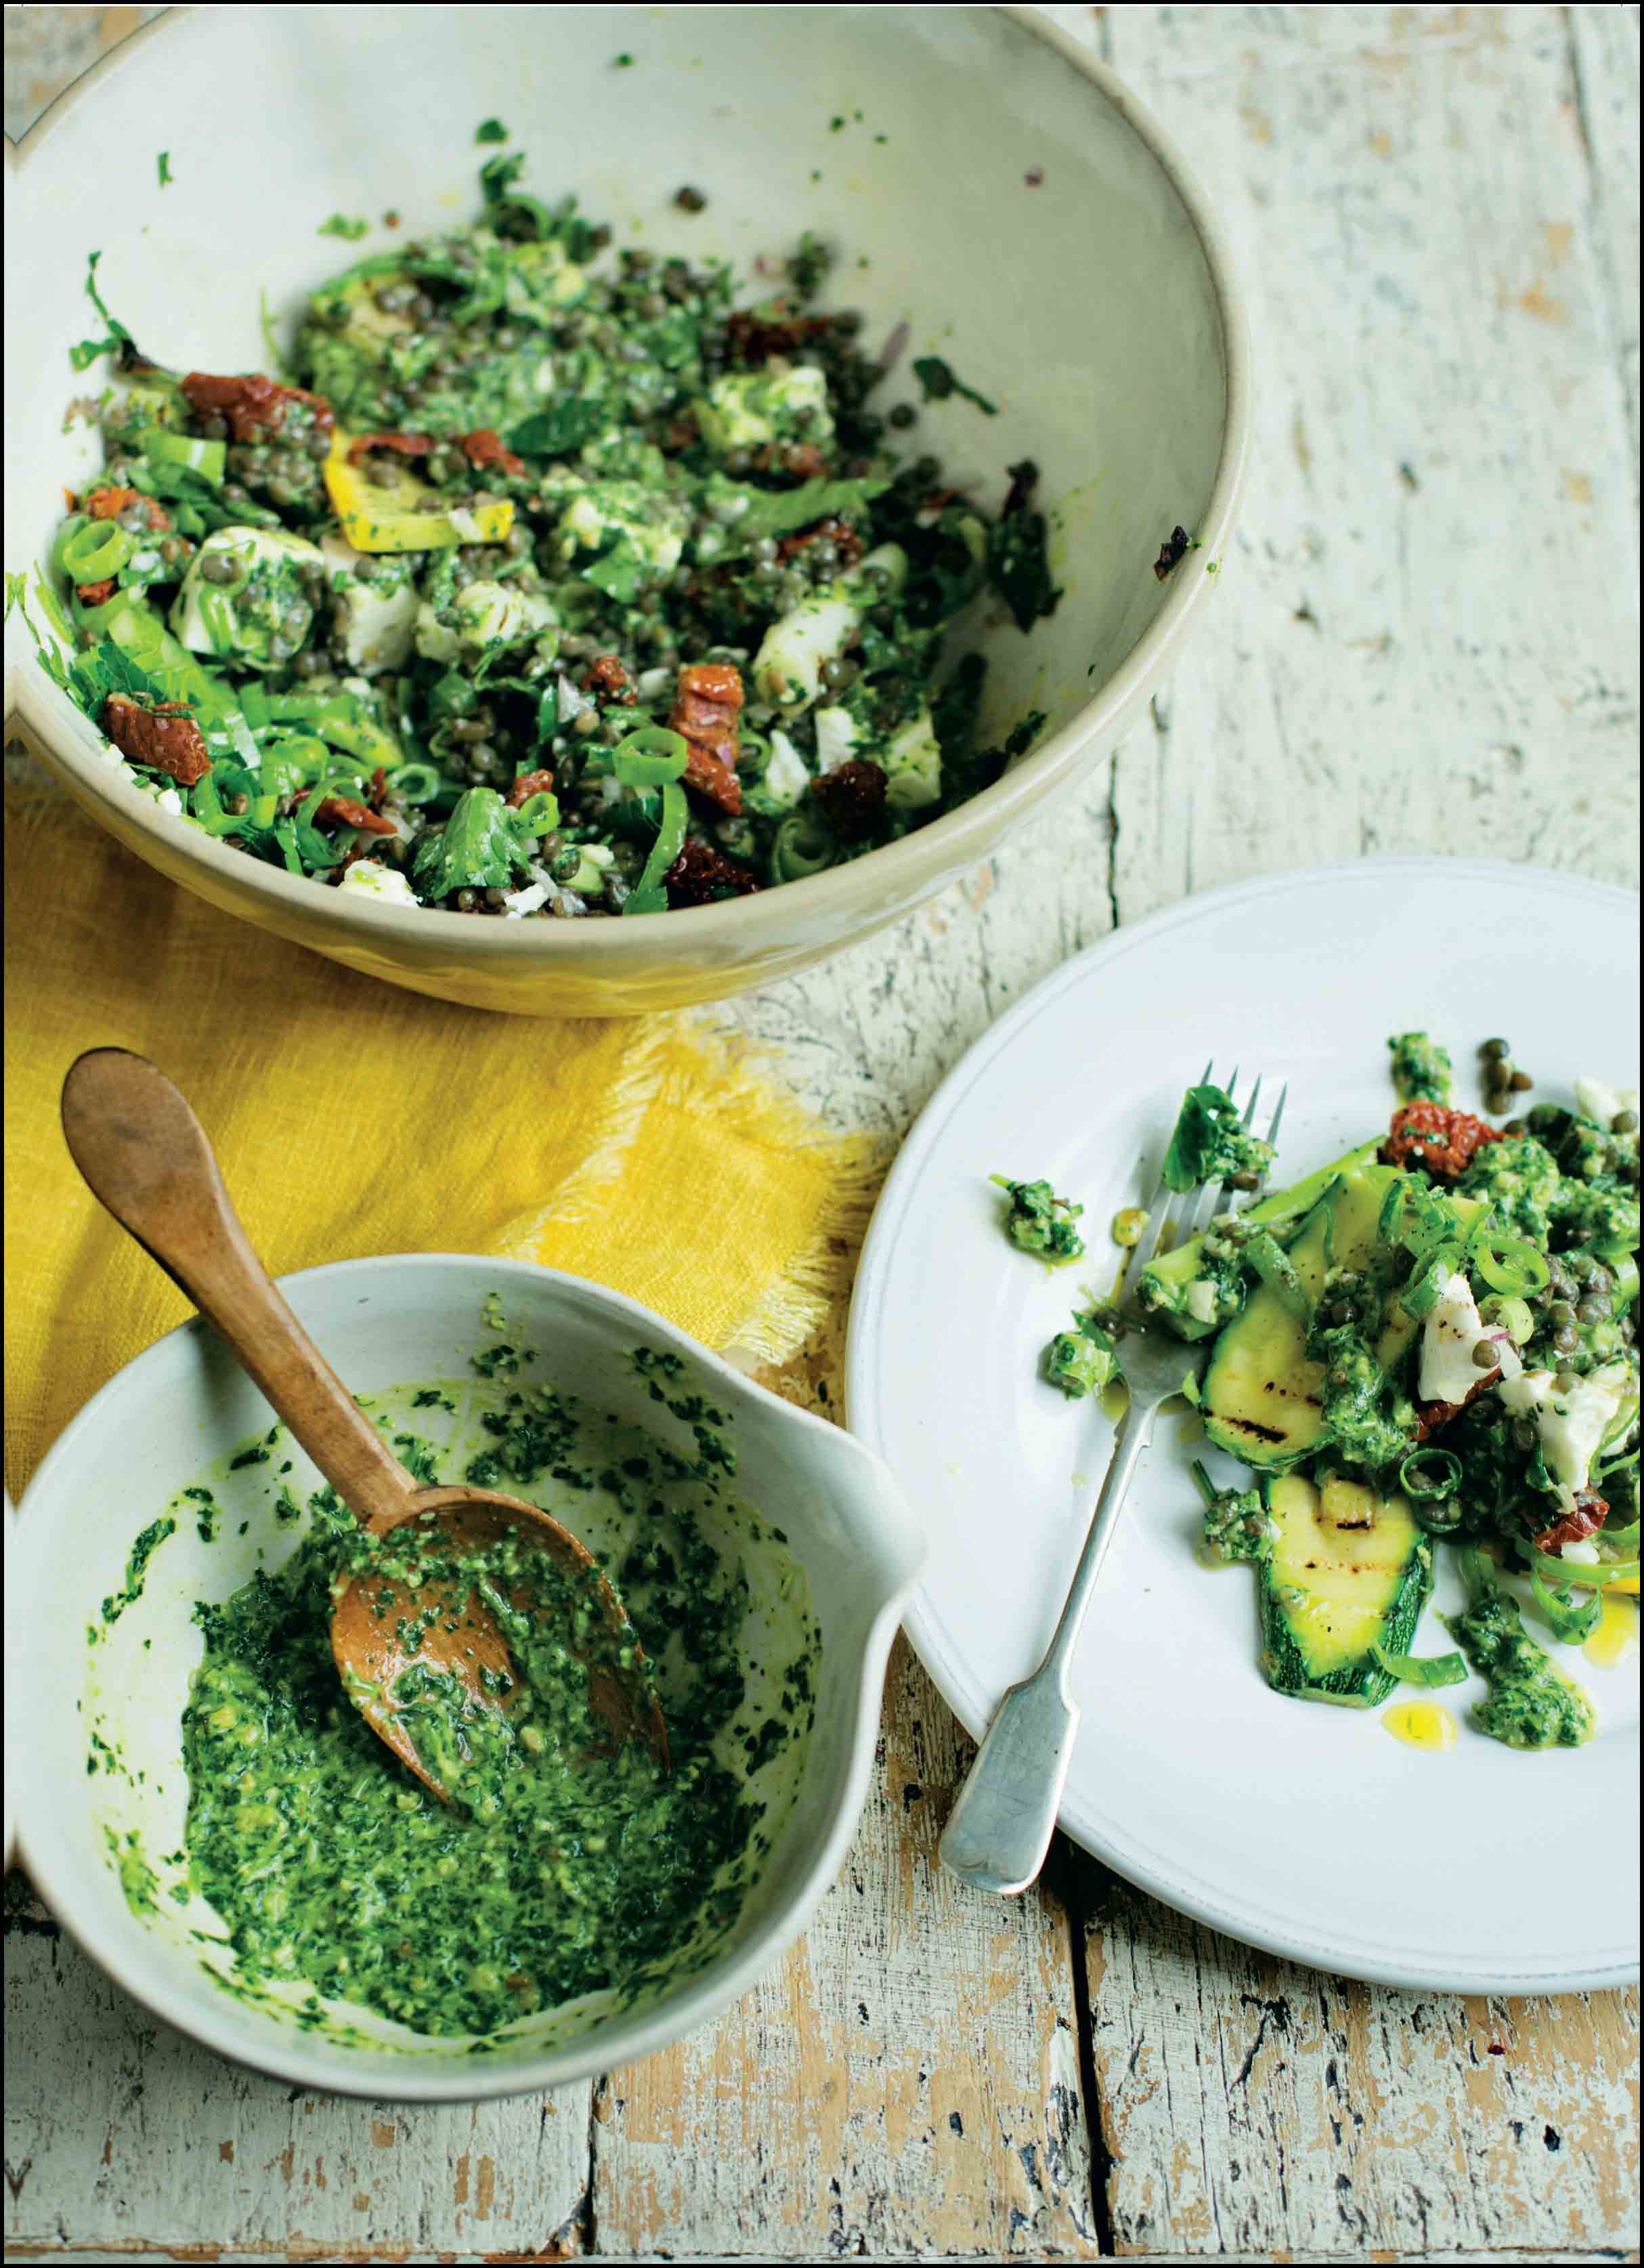 Puy lentil salad with sun-dried tomatoes, feta and watercress pesto